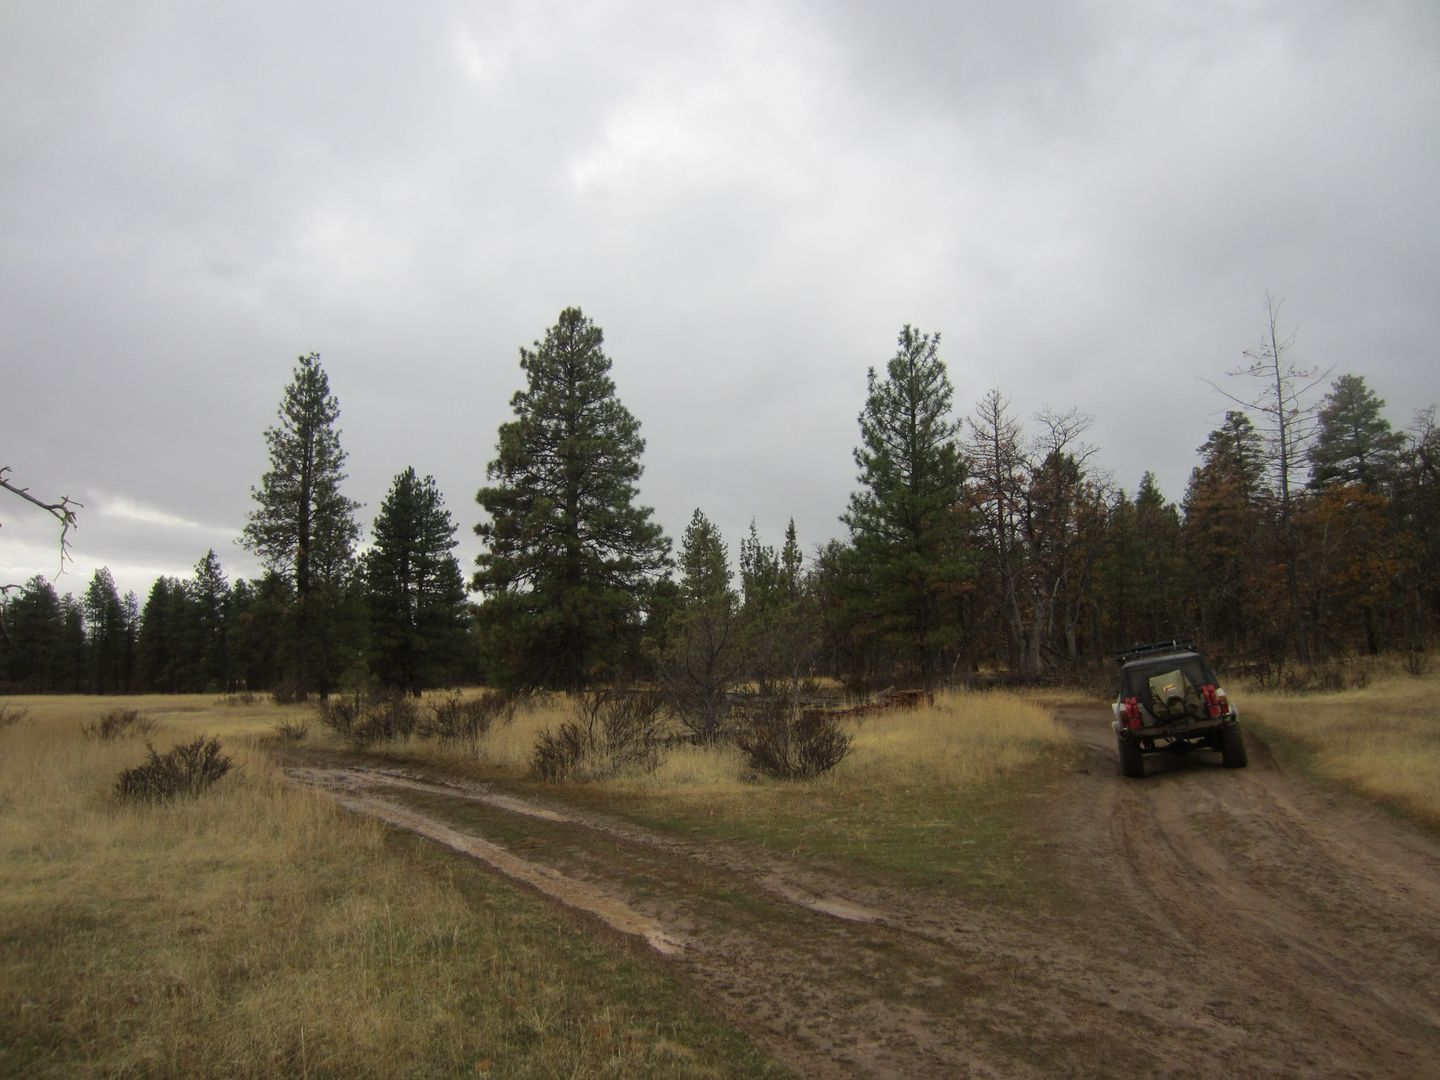 Barlow Trail - Waypoint 3: Stay Right